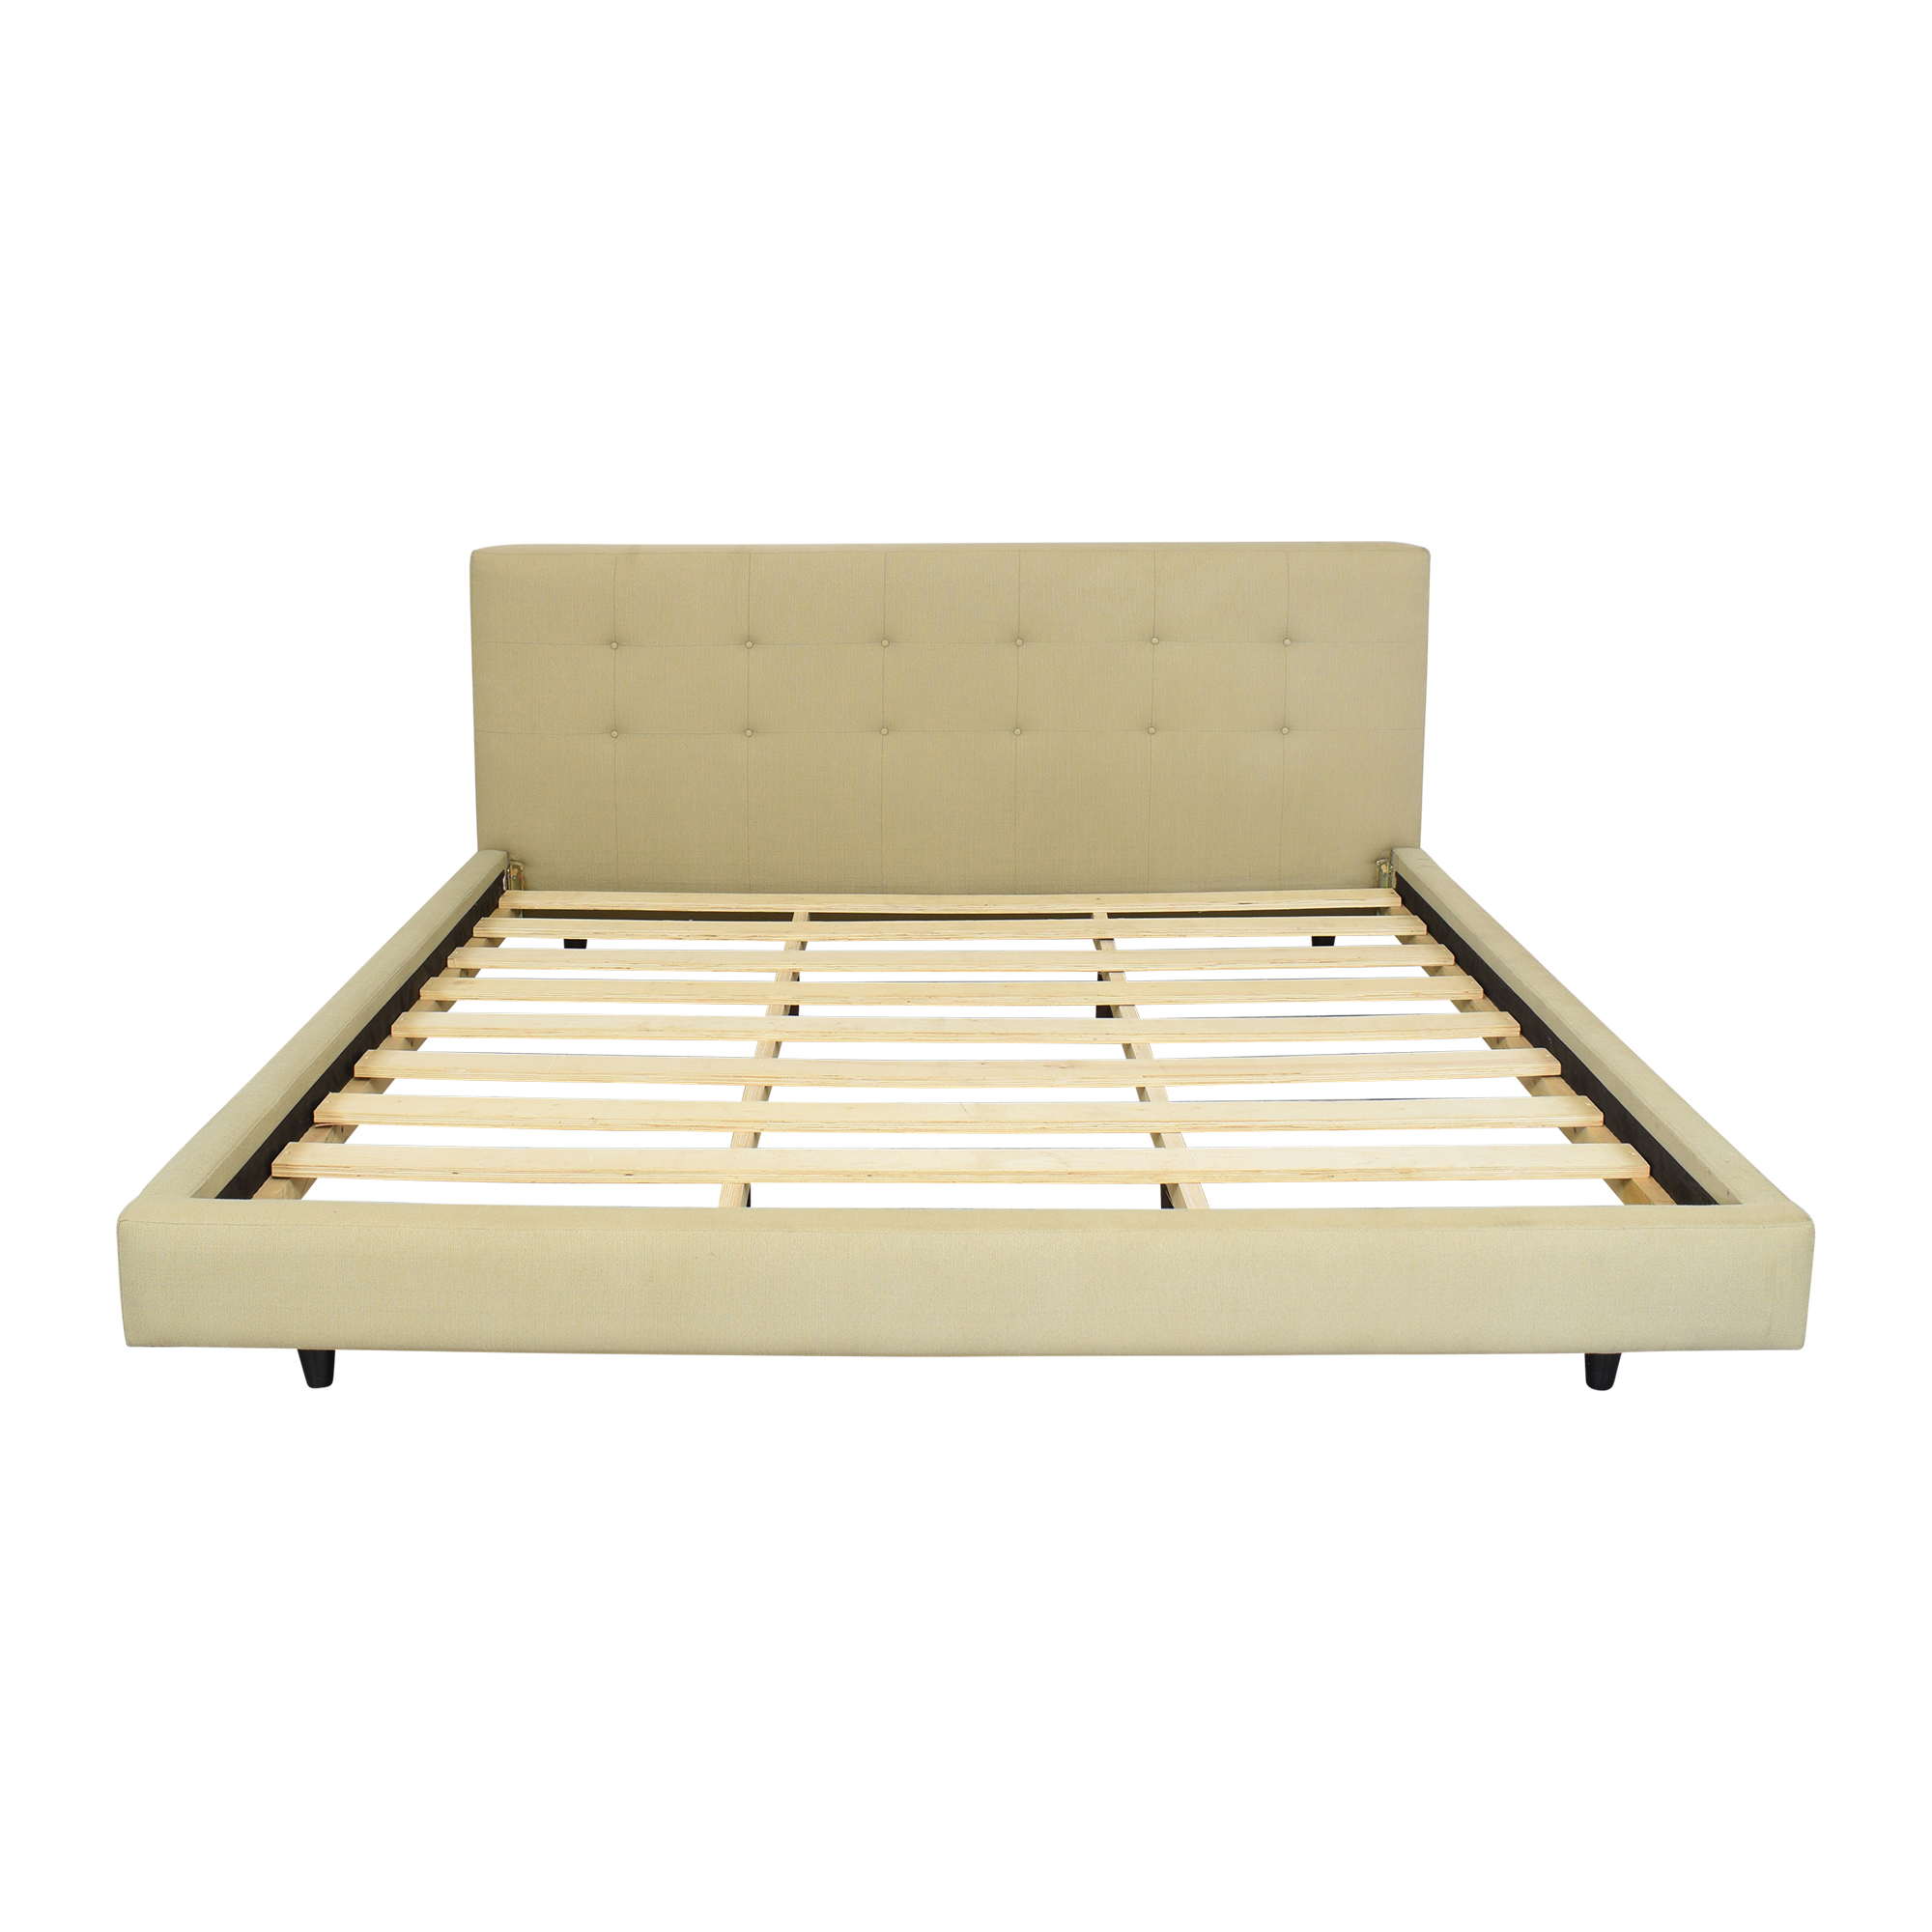 Crate & Barrel Crate & Barrel Tate King Bed discount